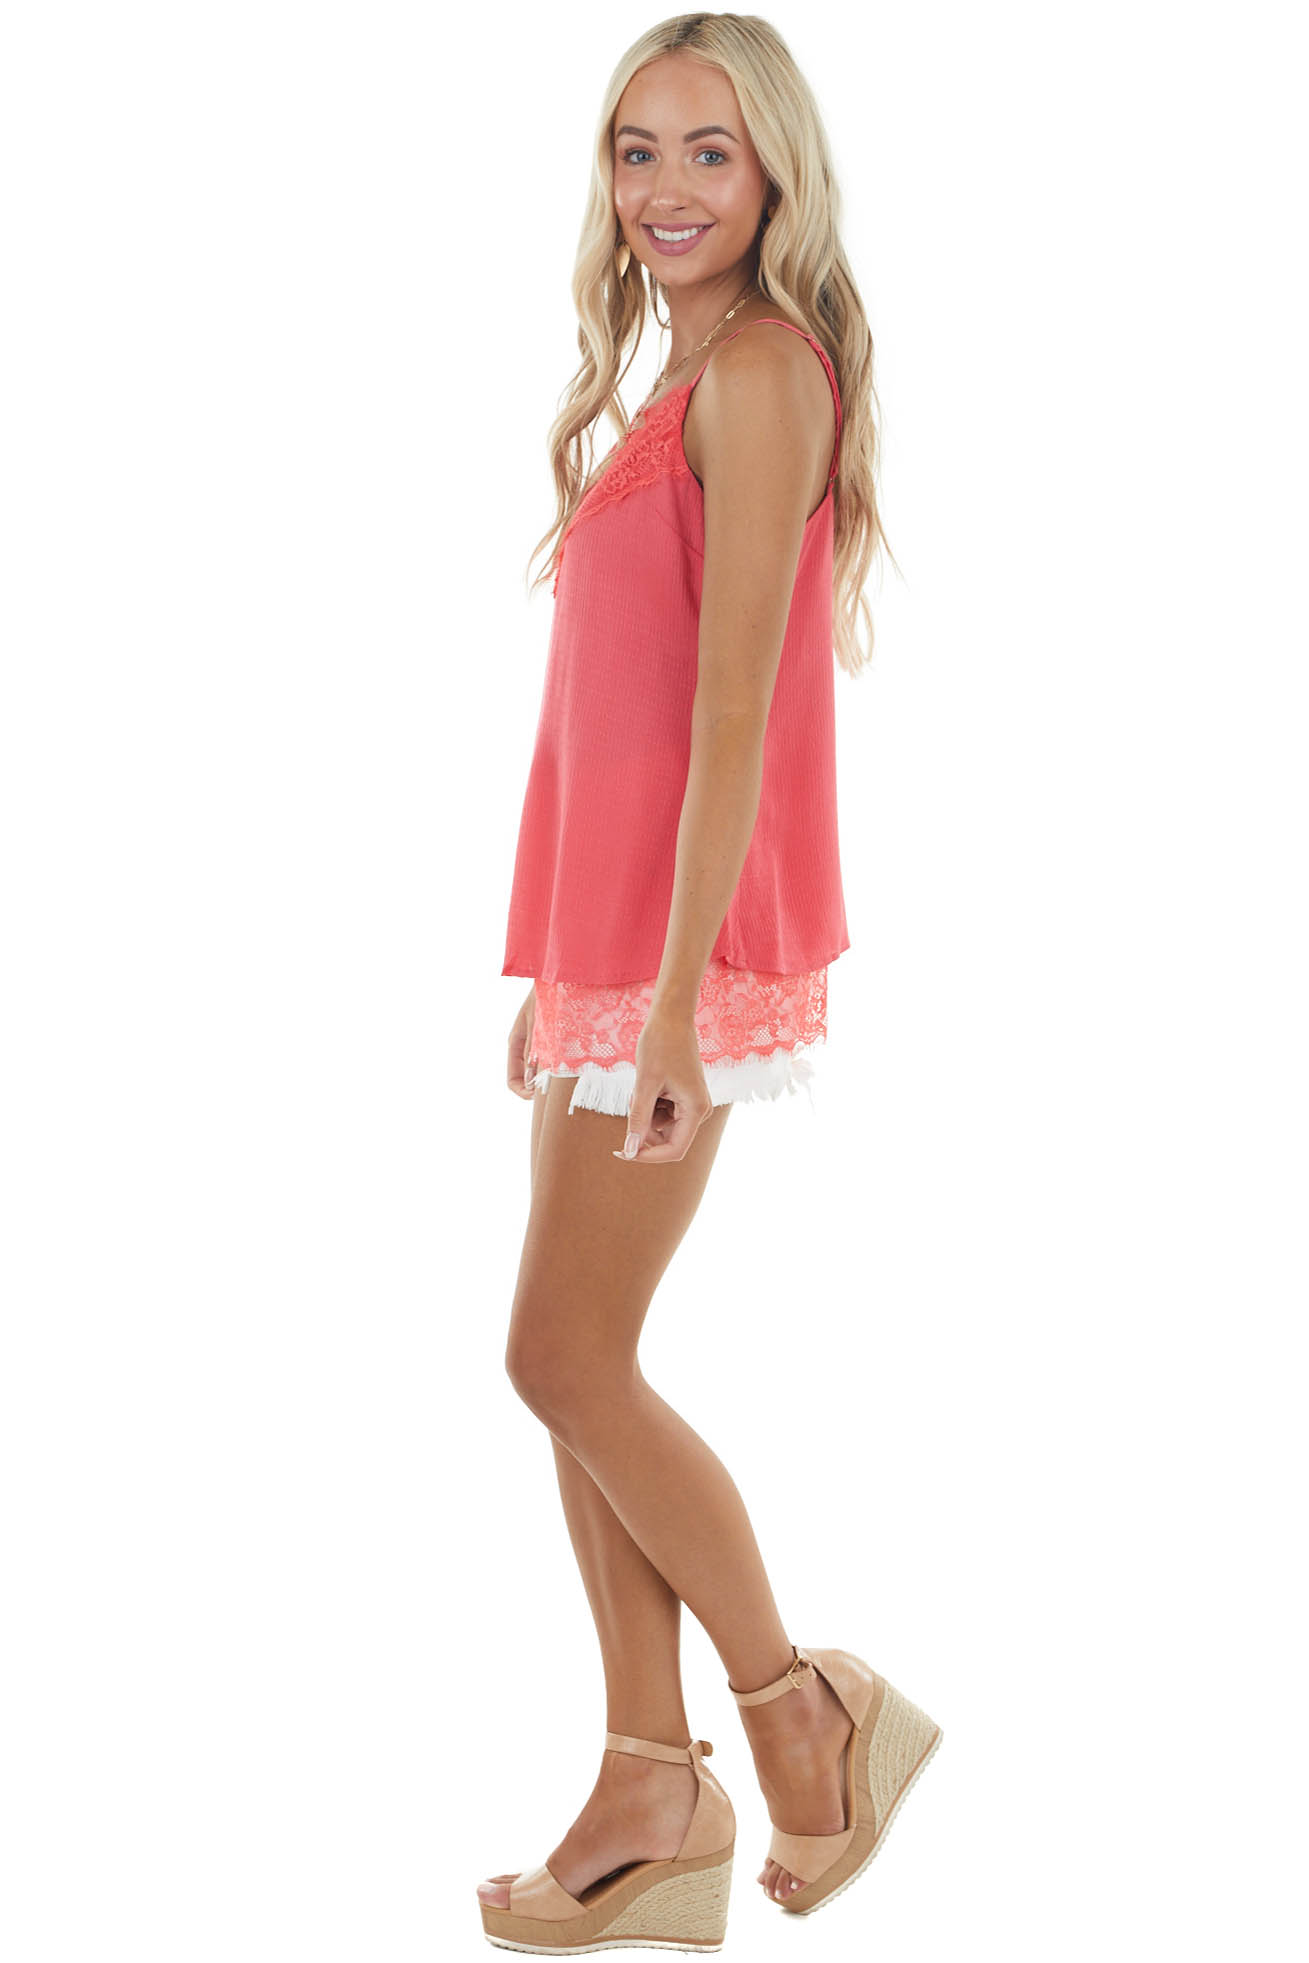 Hot Pink Tank Top with Lace Detail and Adjustable Straps